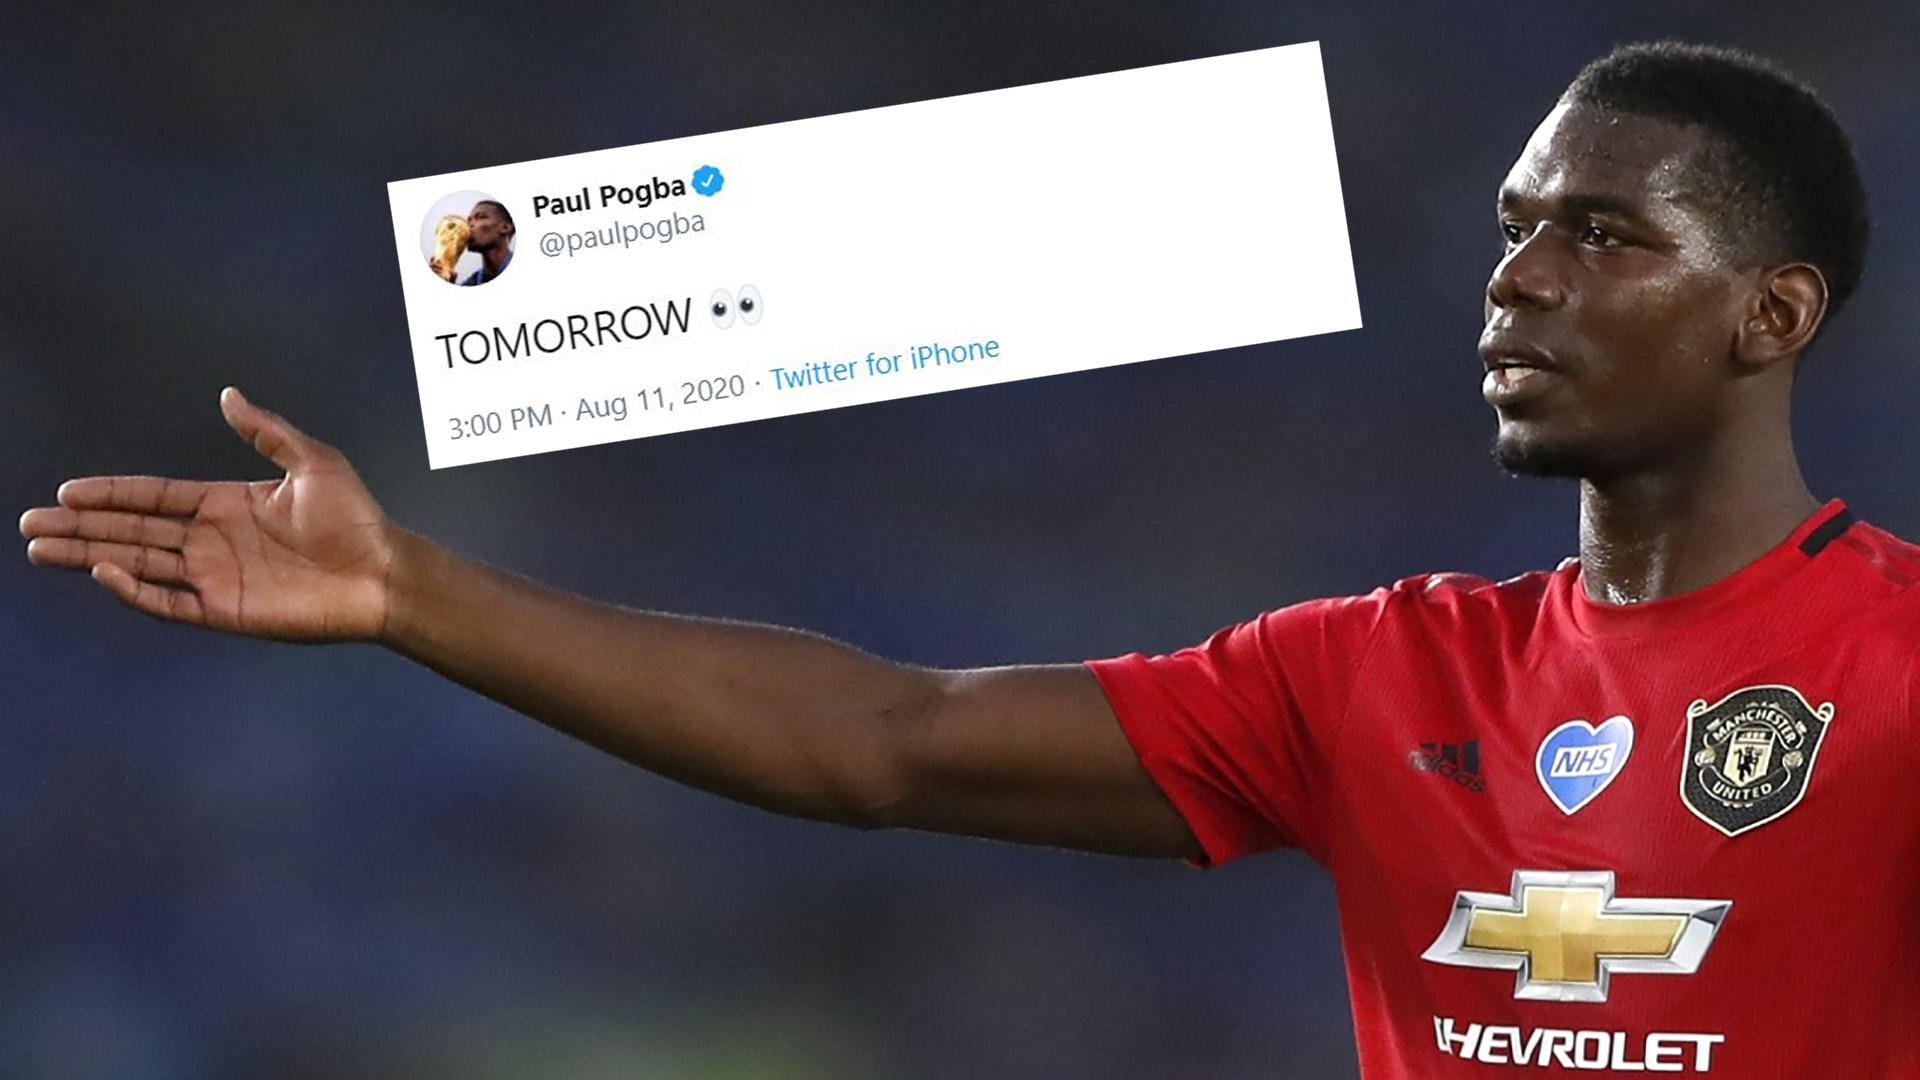 Tomorrow Pogba Raises Hopes Of New Man Utd Contract With Cryptic Social Media Post But Star Says It S Nothing About Football